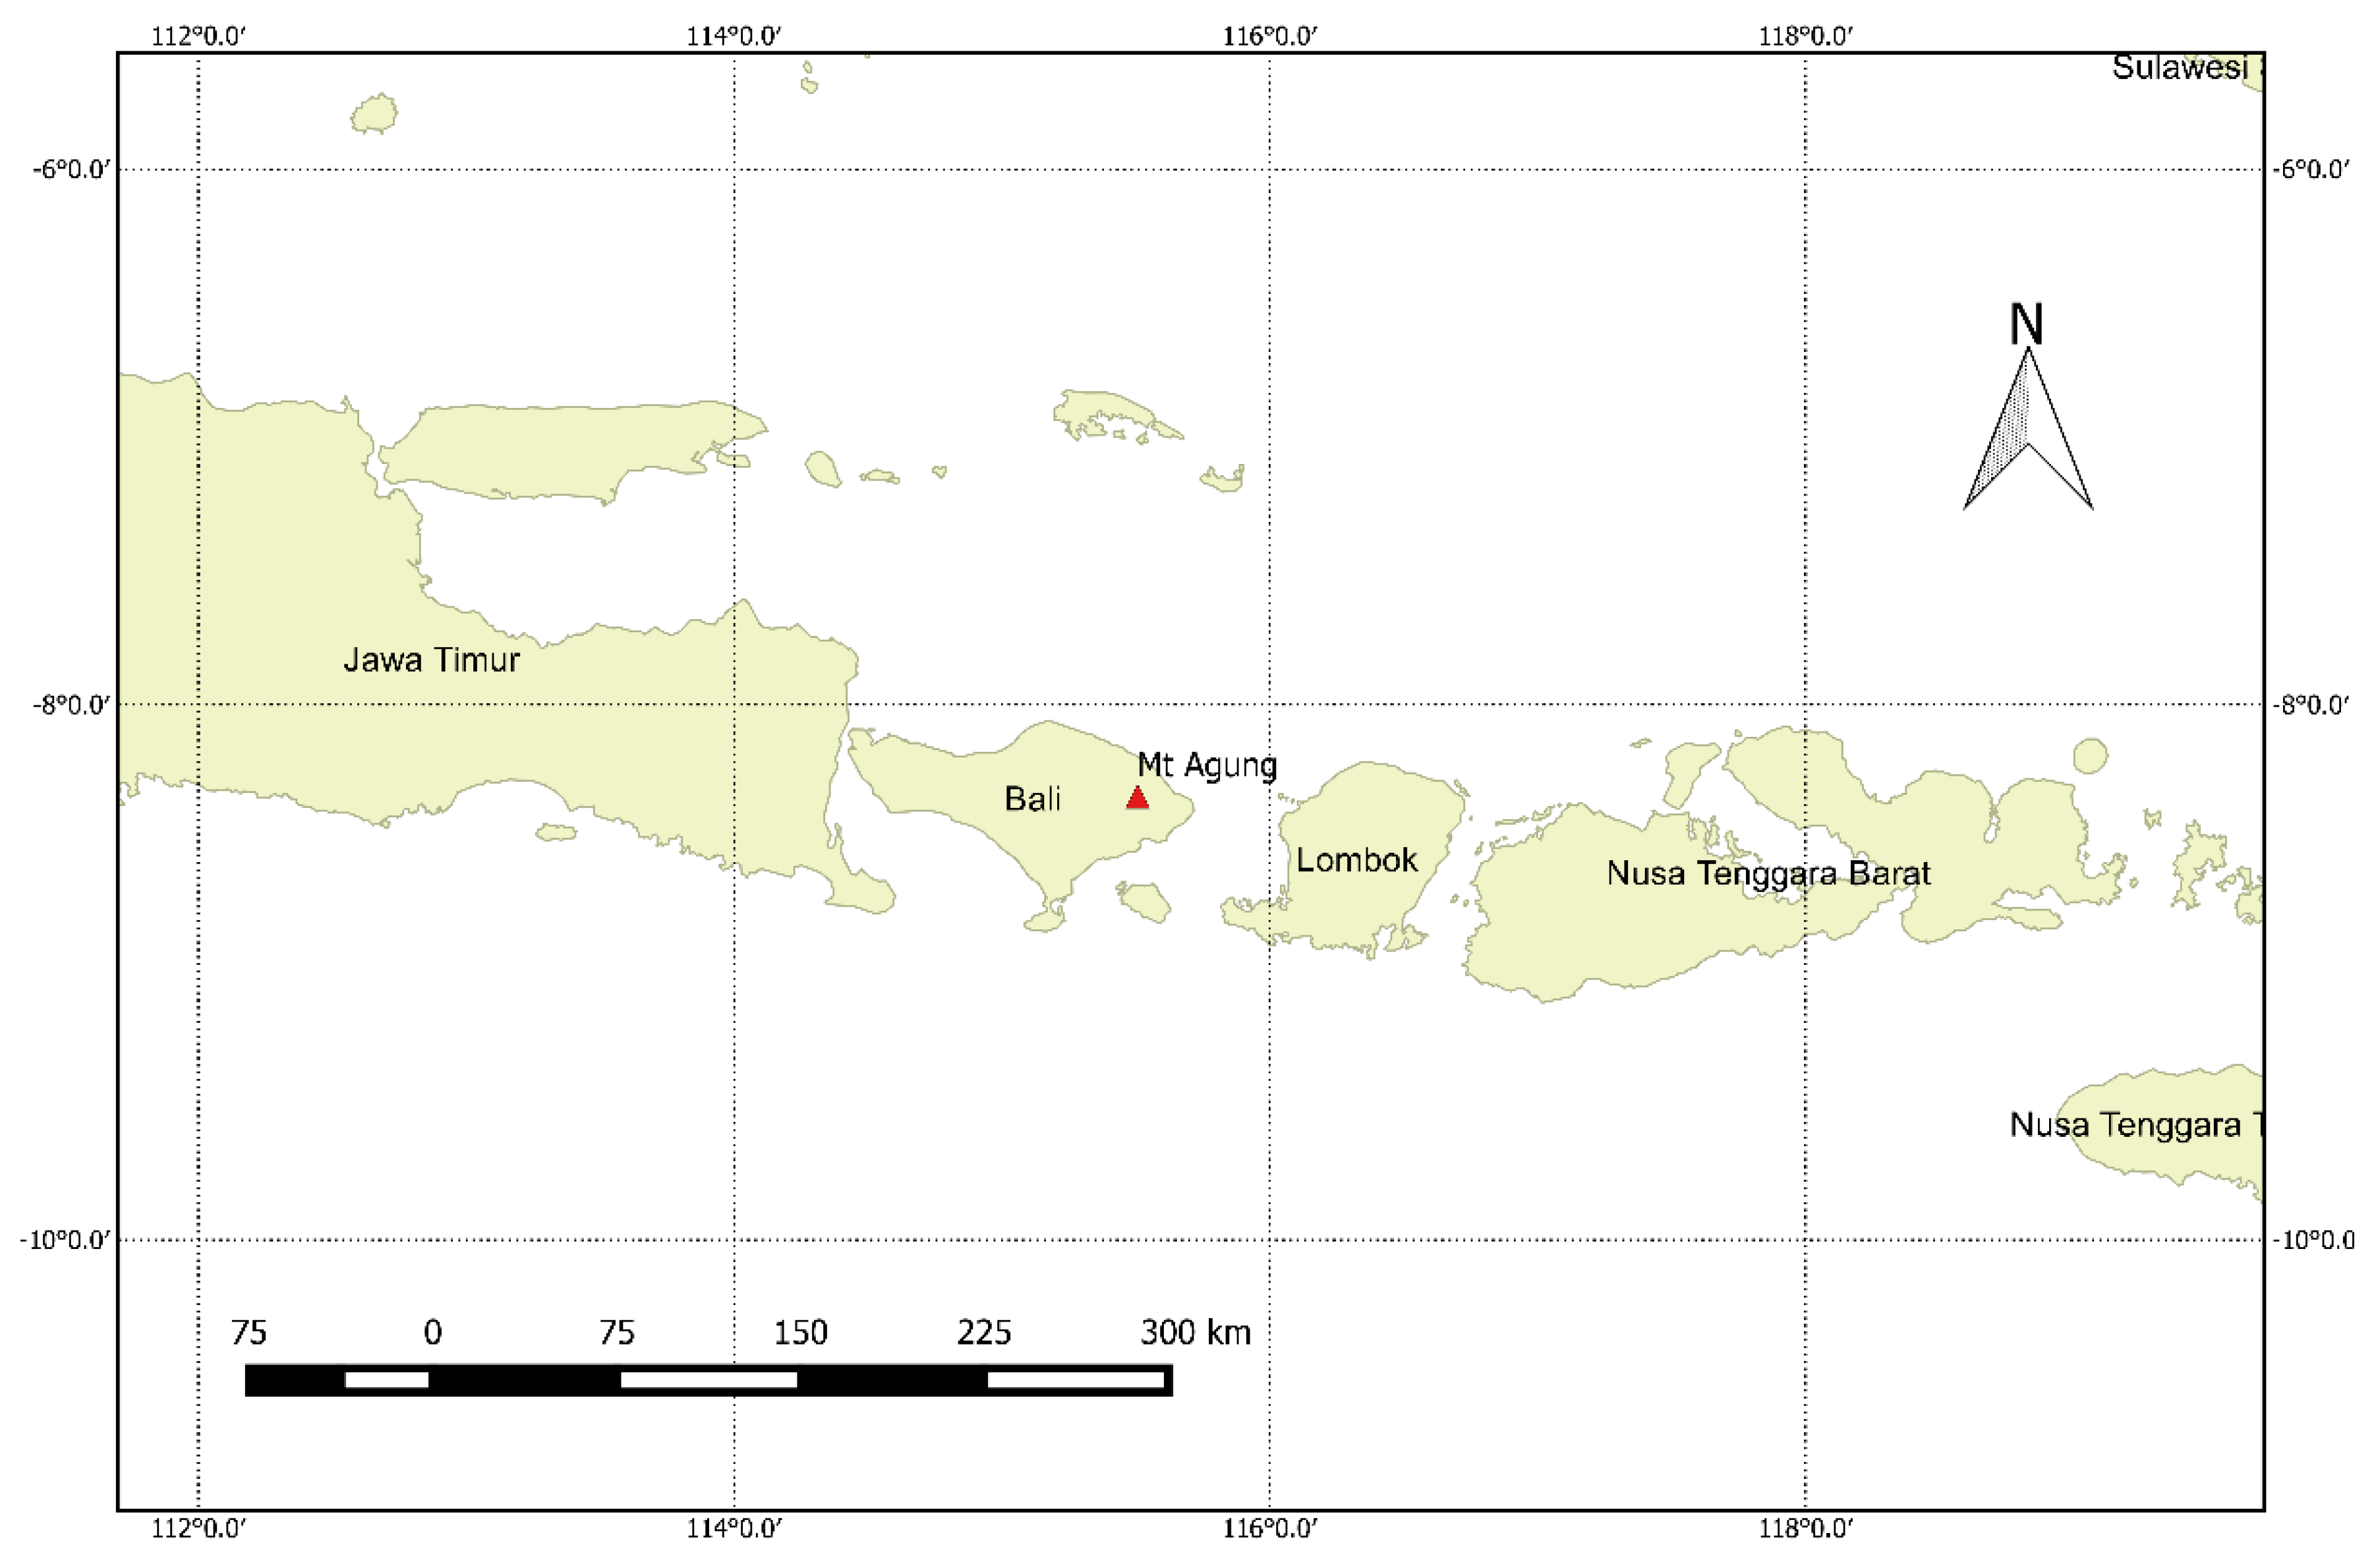 Remote Sensing | Free Full-Text | Monitoring the Agung (Indonesia